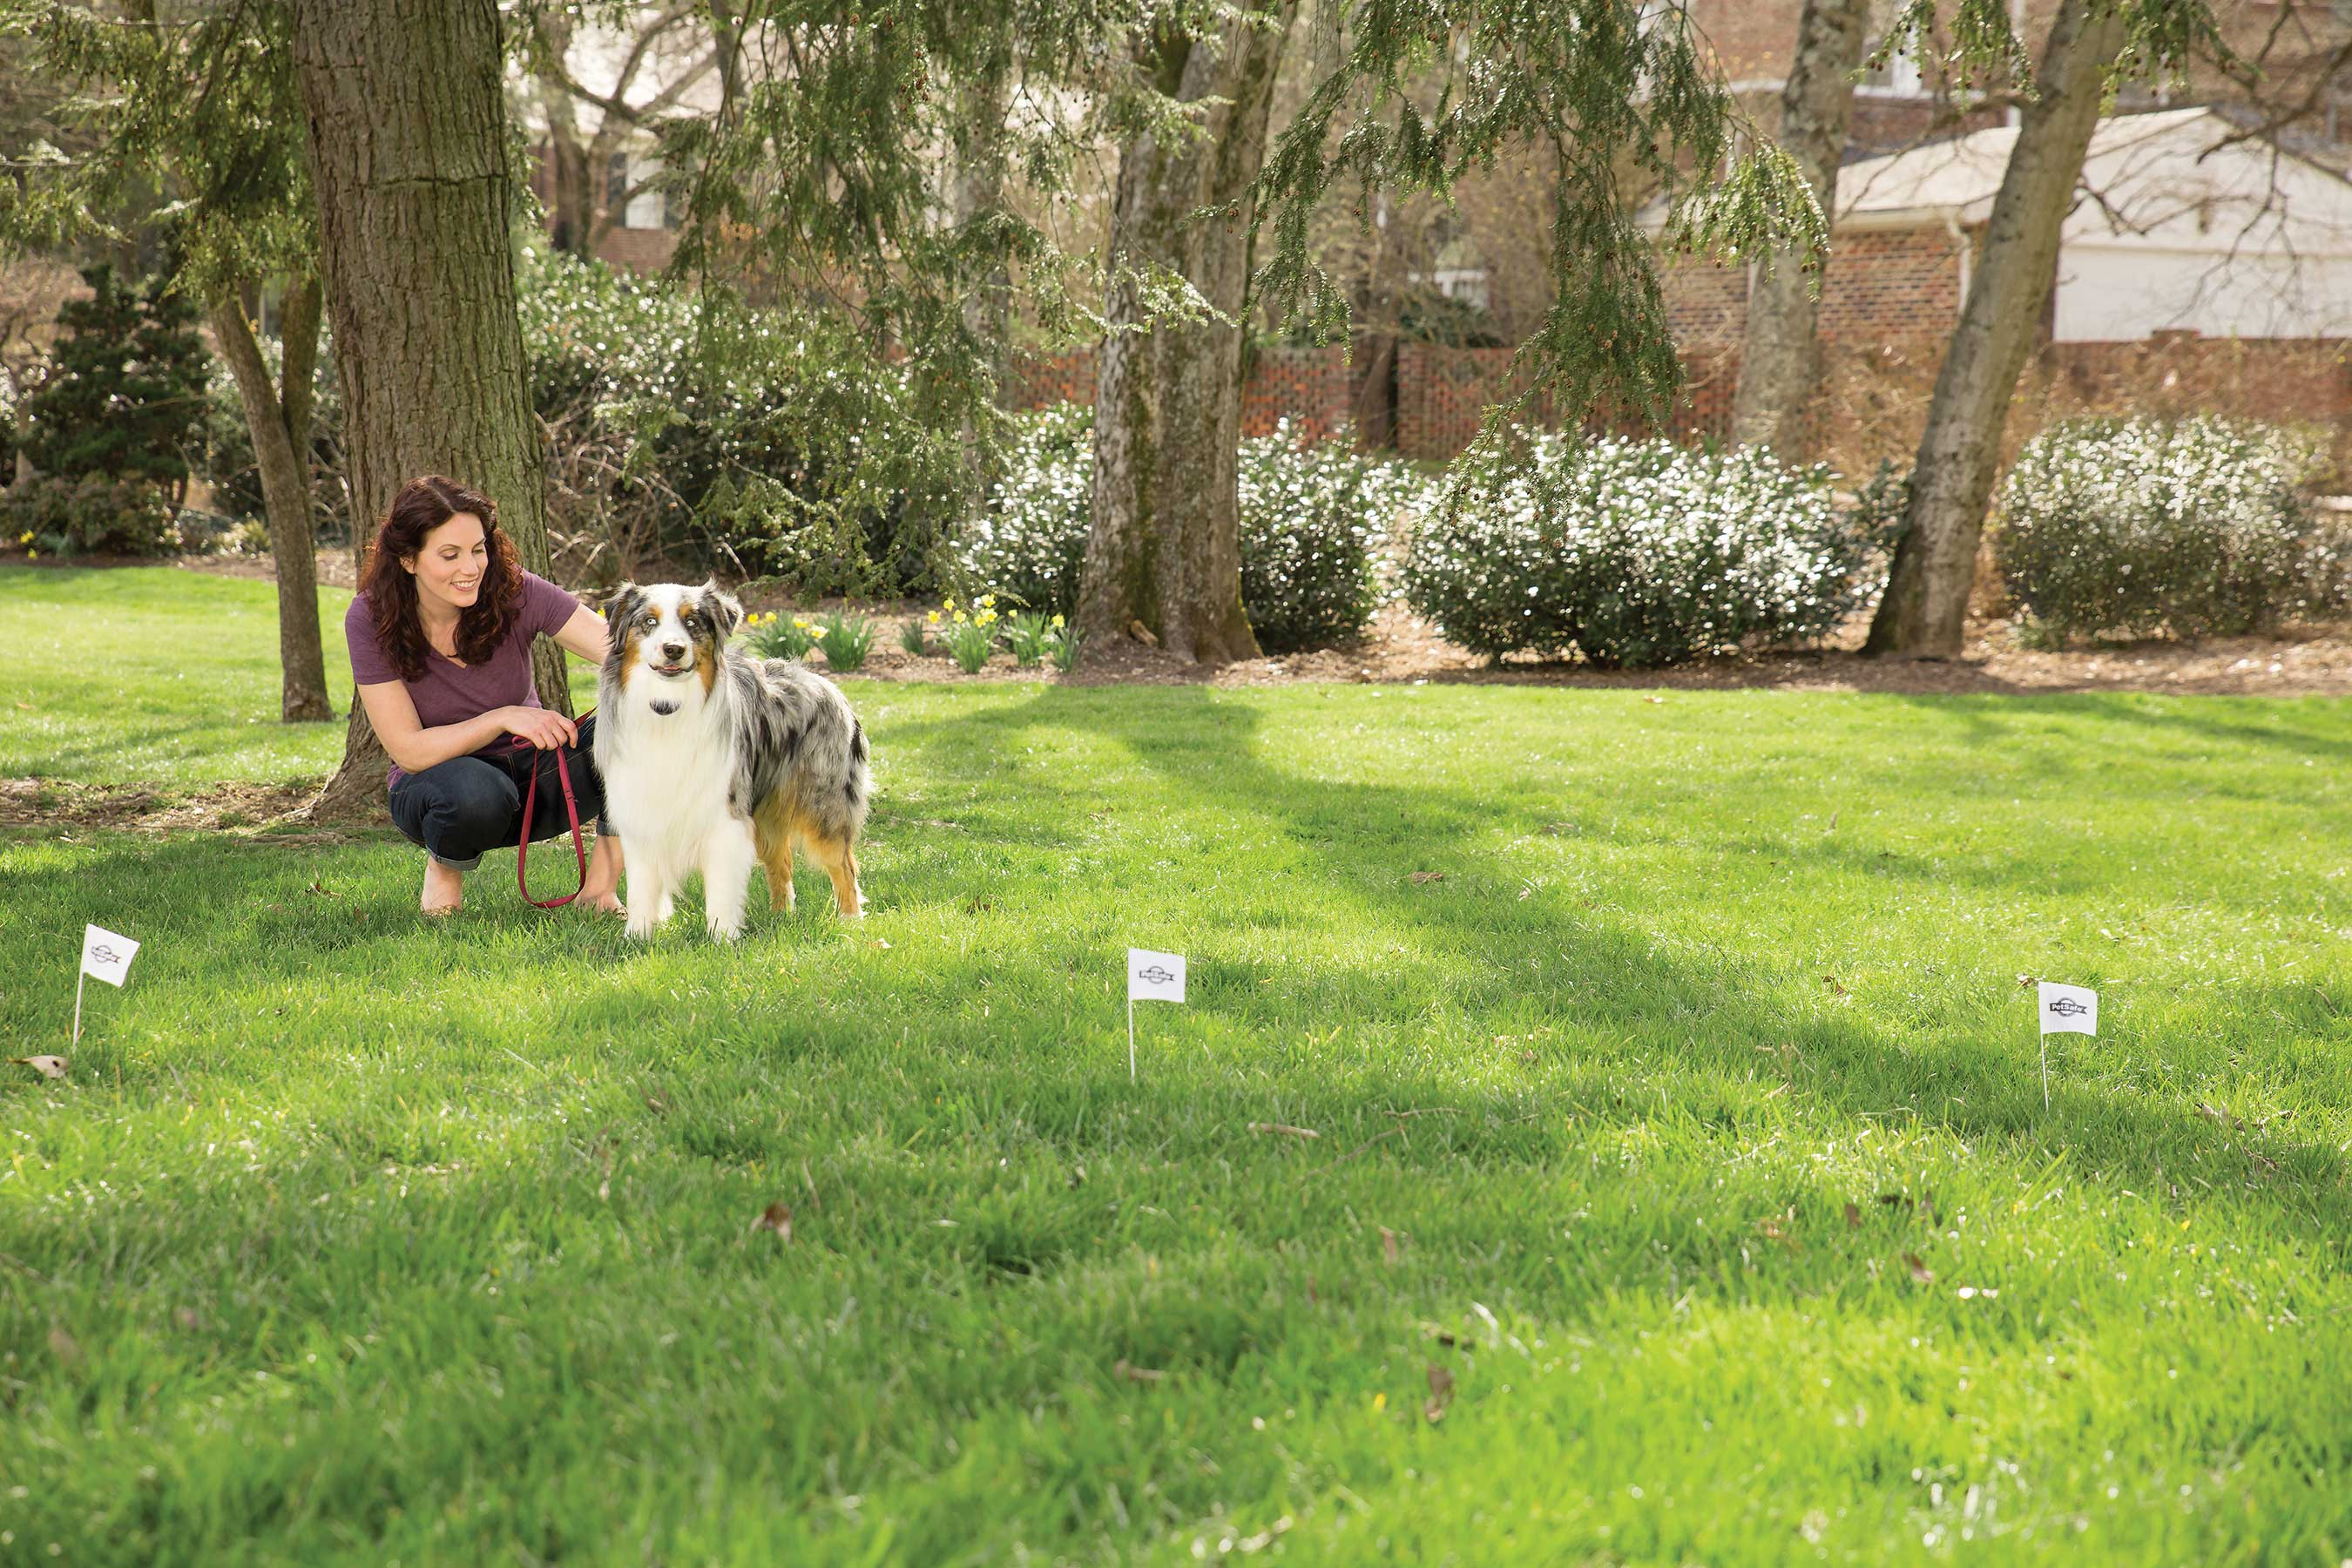 The PetSafe® Free to Roam Wireless Fence™ covers a circular area up to half an acre with no trenches to dig or wires to bury at a fraction of the cost of a traditional fence.